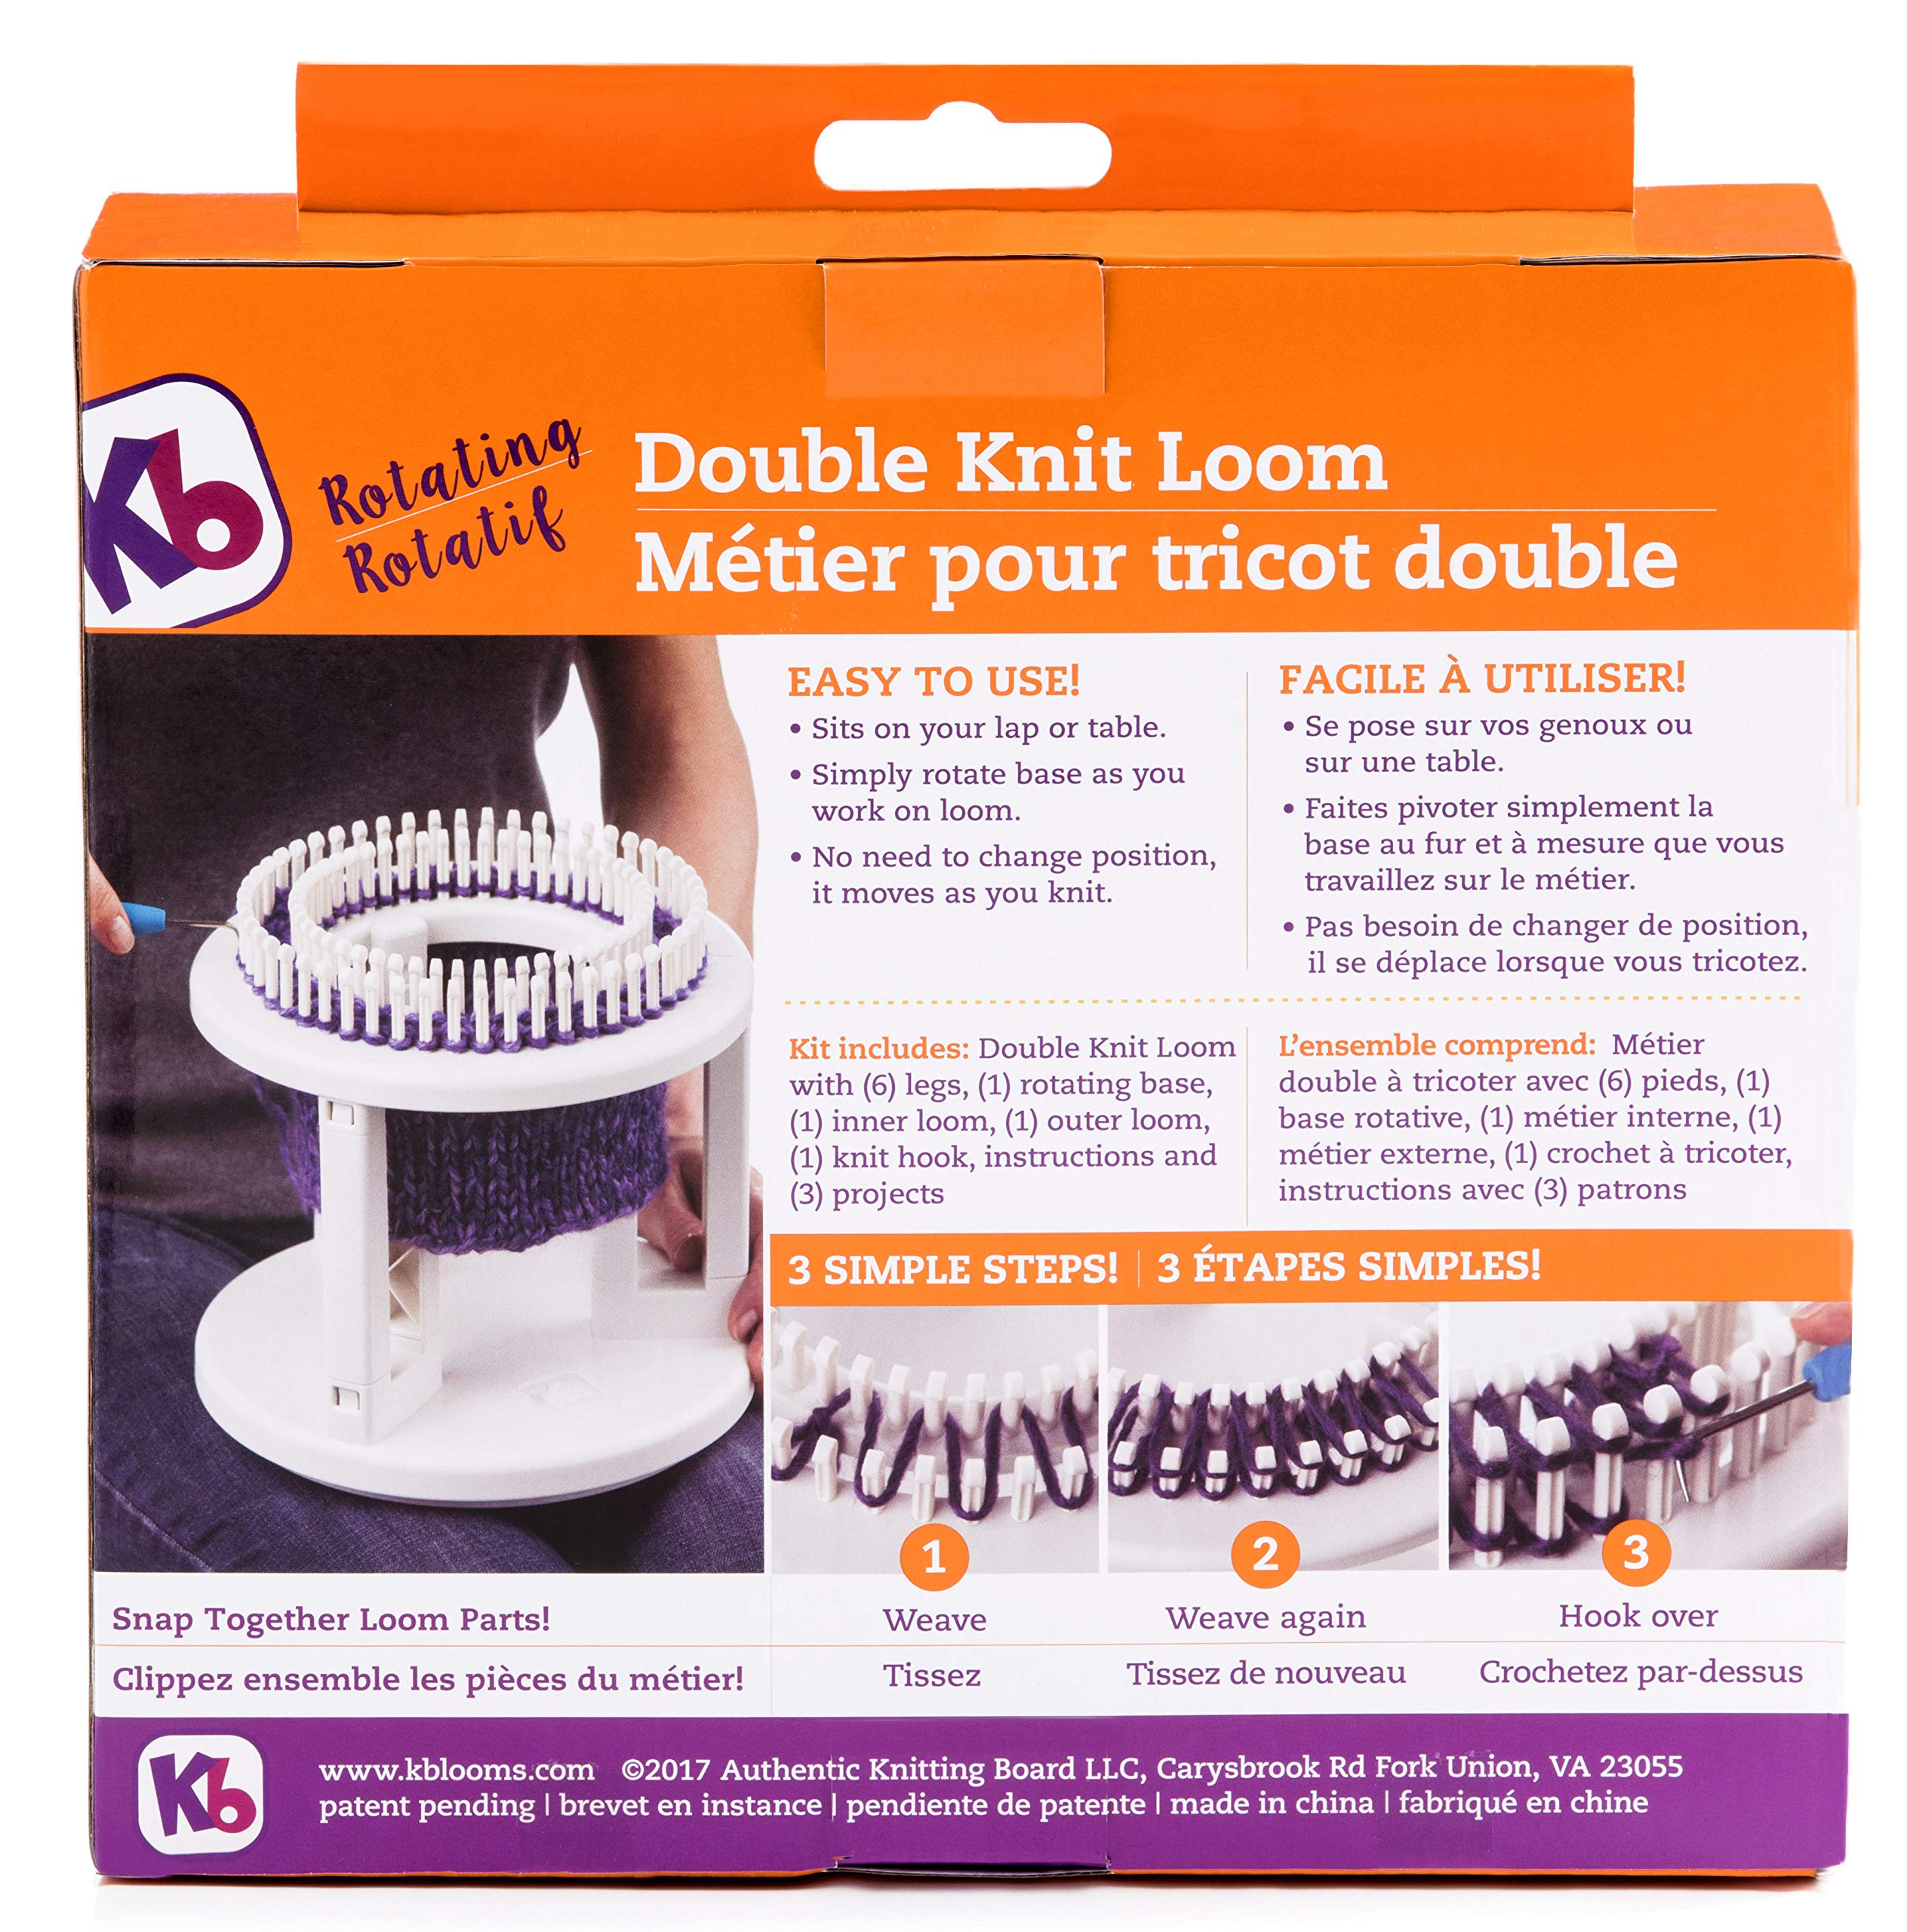 Authentic Knitting Board Rotating Double Knit Loom, Off Off White by Authentic Knitting Board (Image #2)